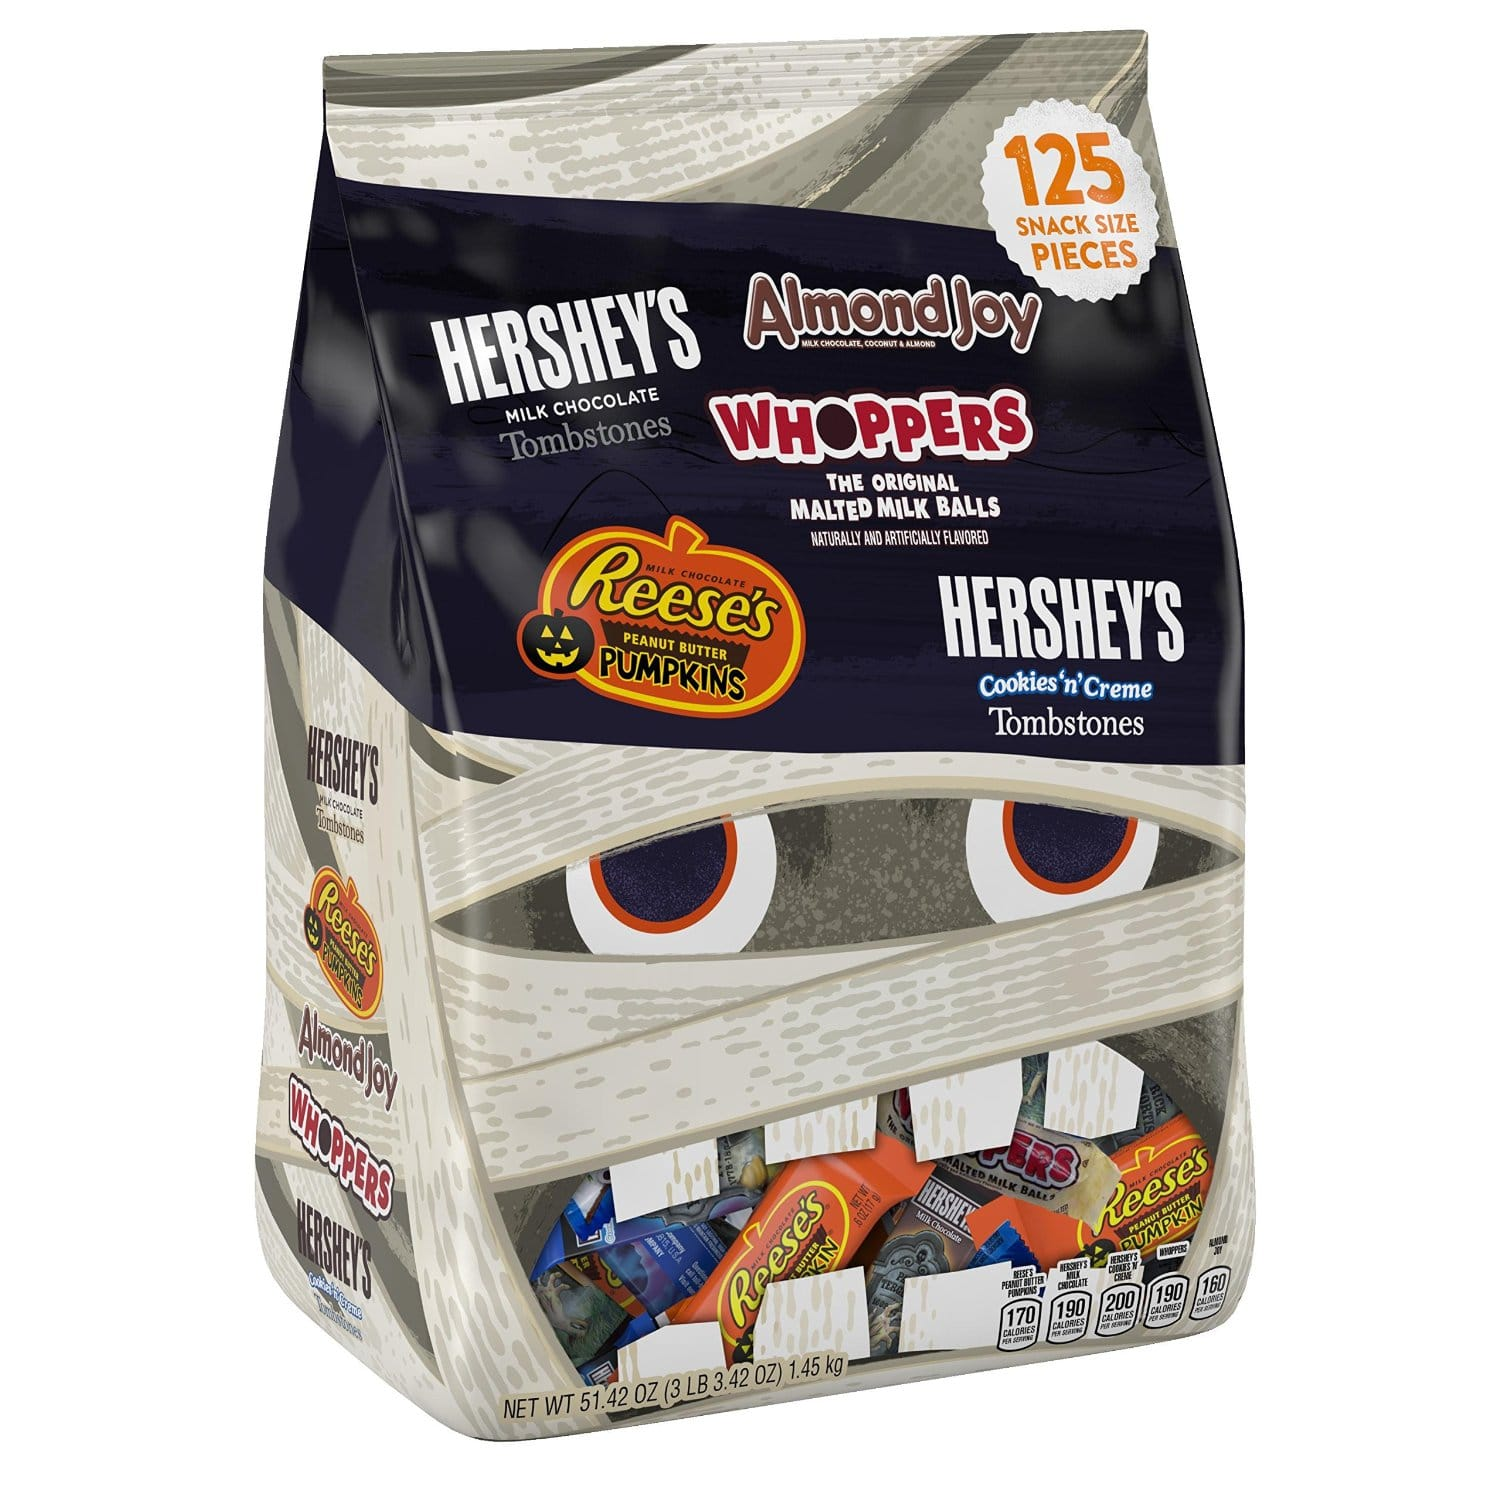 HERSHEY'S Halloween Snack Size Assortment (51.42-Ounce Bag, 125 Pieces) $9.75 at amazon